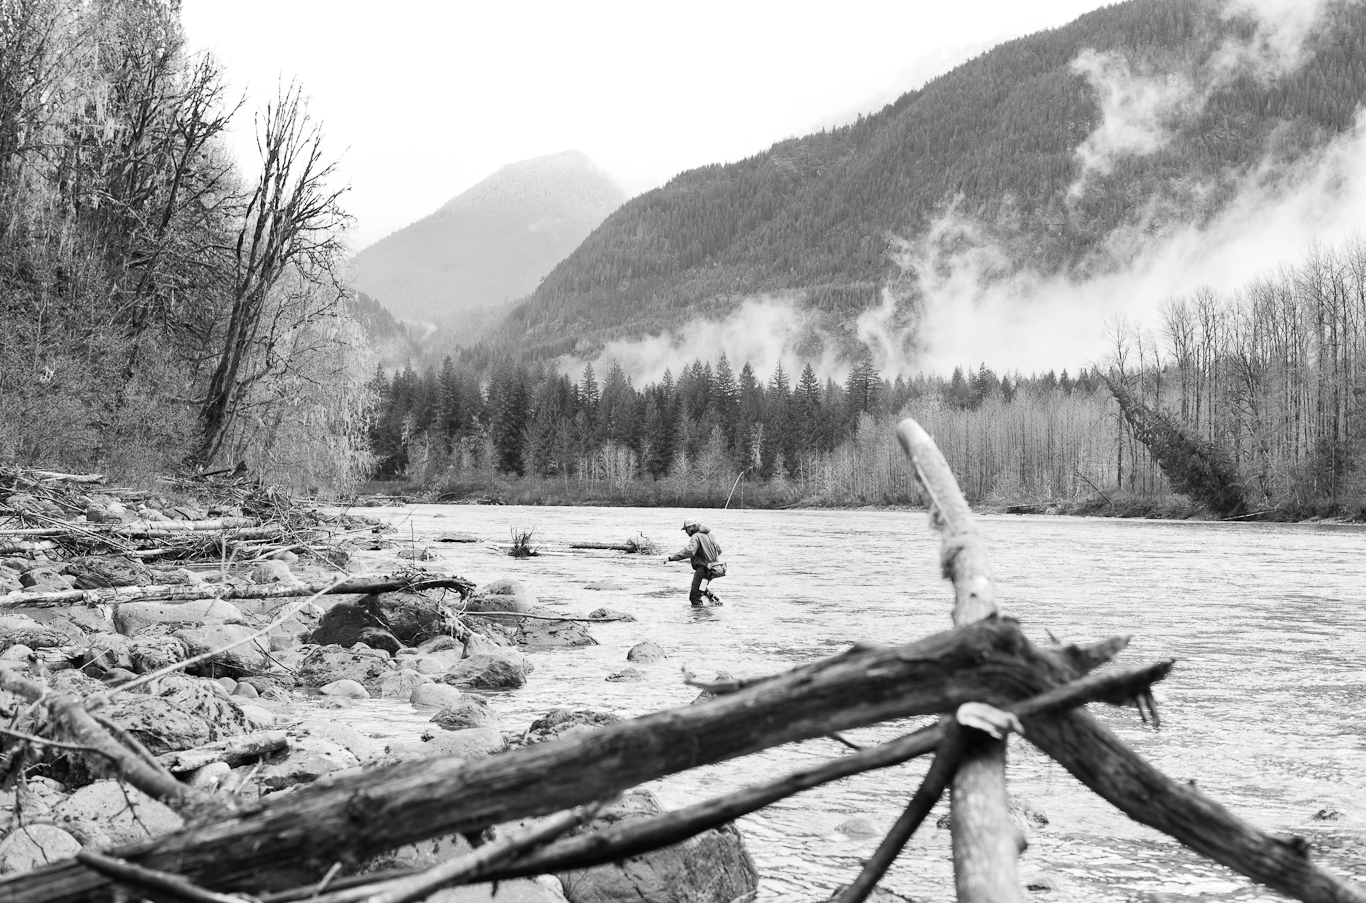 steelhead, flyfishing, pacific northwest, washington state